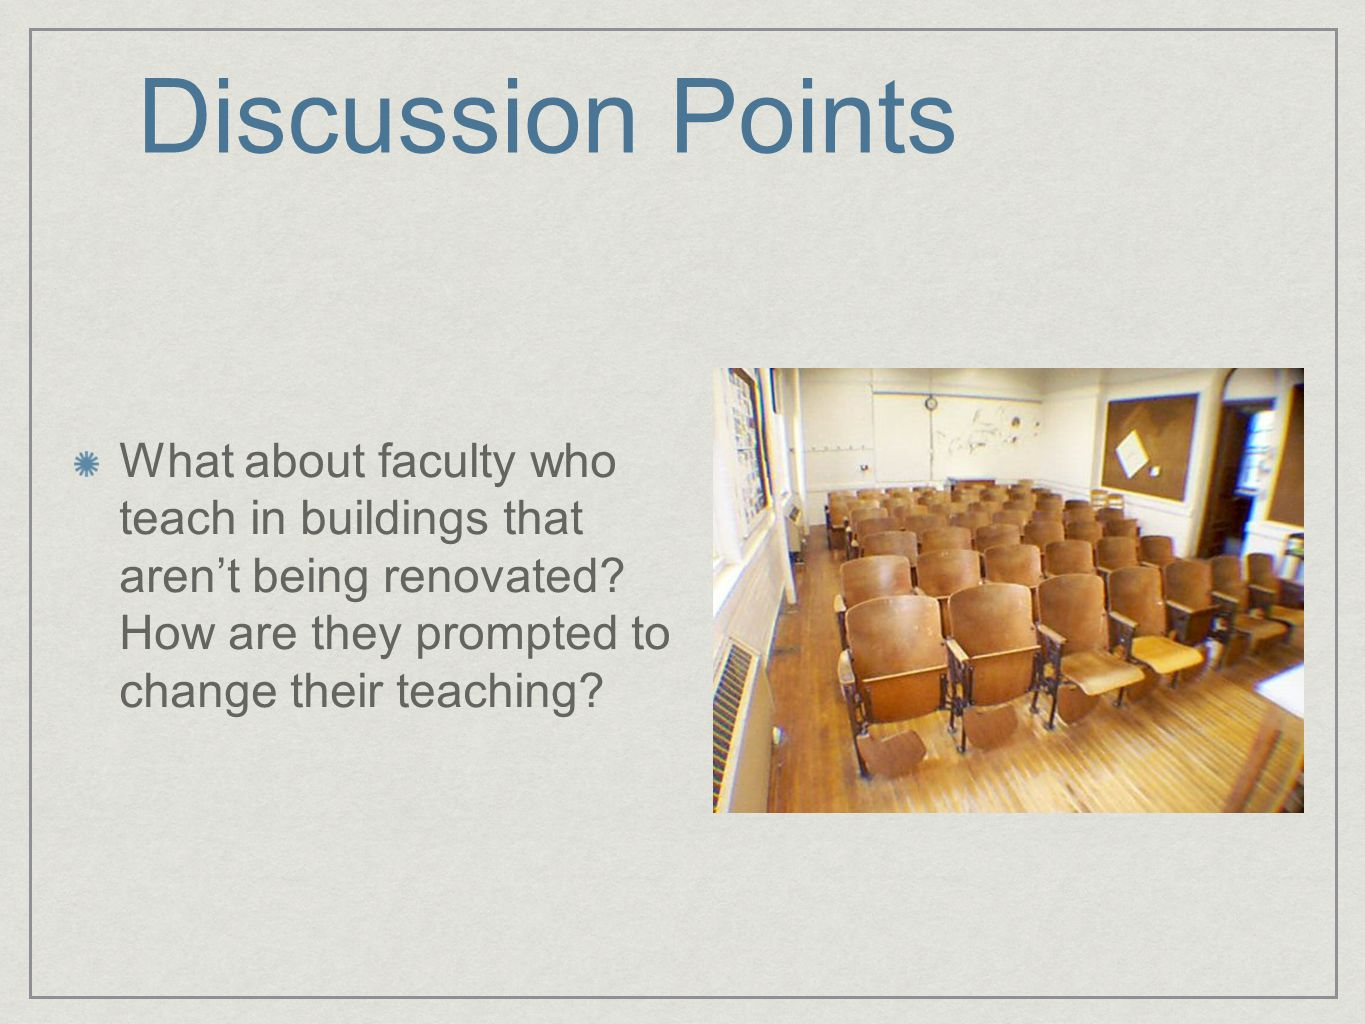 Innovative higher ed classroom design examples Notre Dame - Jordan Hall of ScienceJordan Hall of Science Stanford - Wallenberg HallWallenberg Hall New Models for Large Lectures: SCALE-UPSCALE-UP